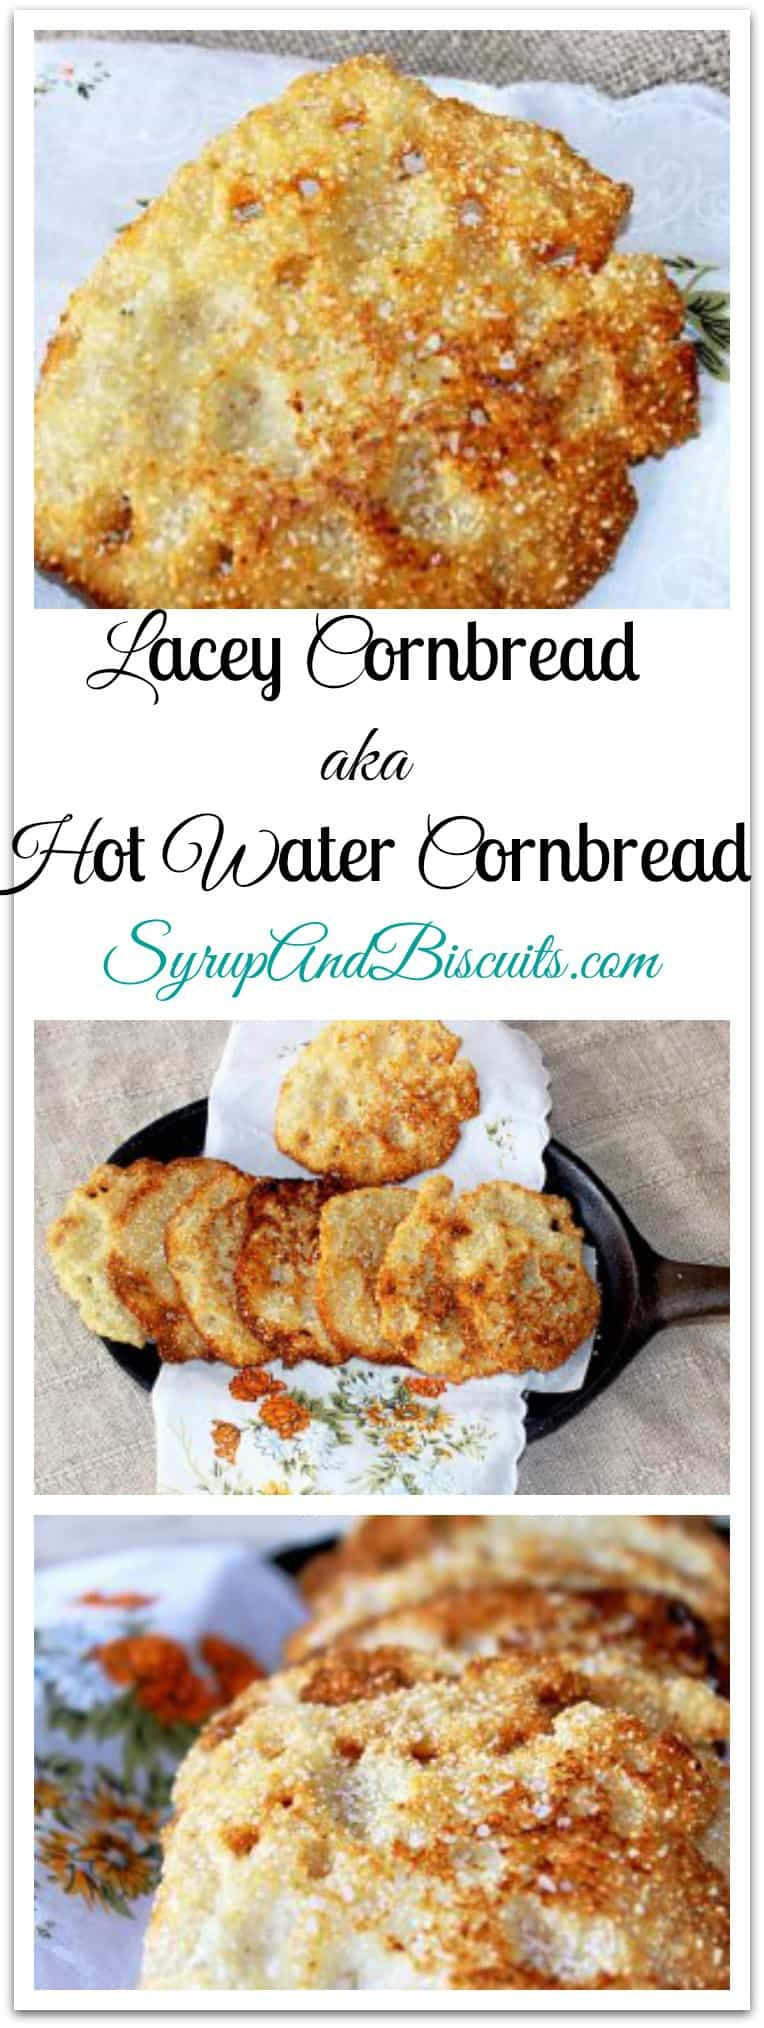 Lacey Cornbread aka Hot Water Cornbread is a rustic cornbread made of unleavened cornmeal, hot water, and salt and fried in a cast iron skillet. #Cornbread #Rustic